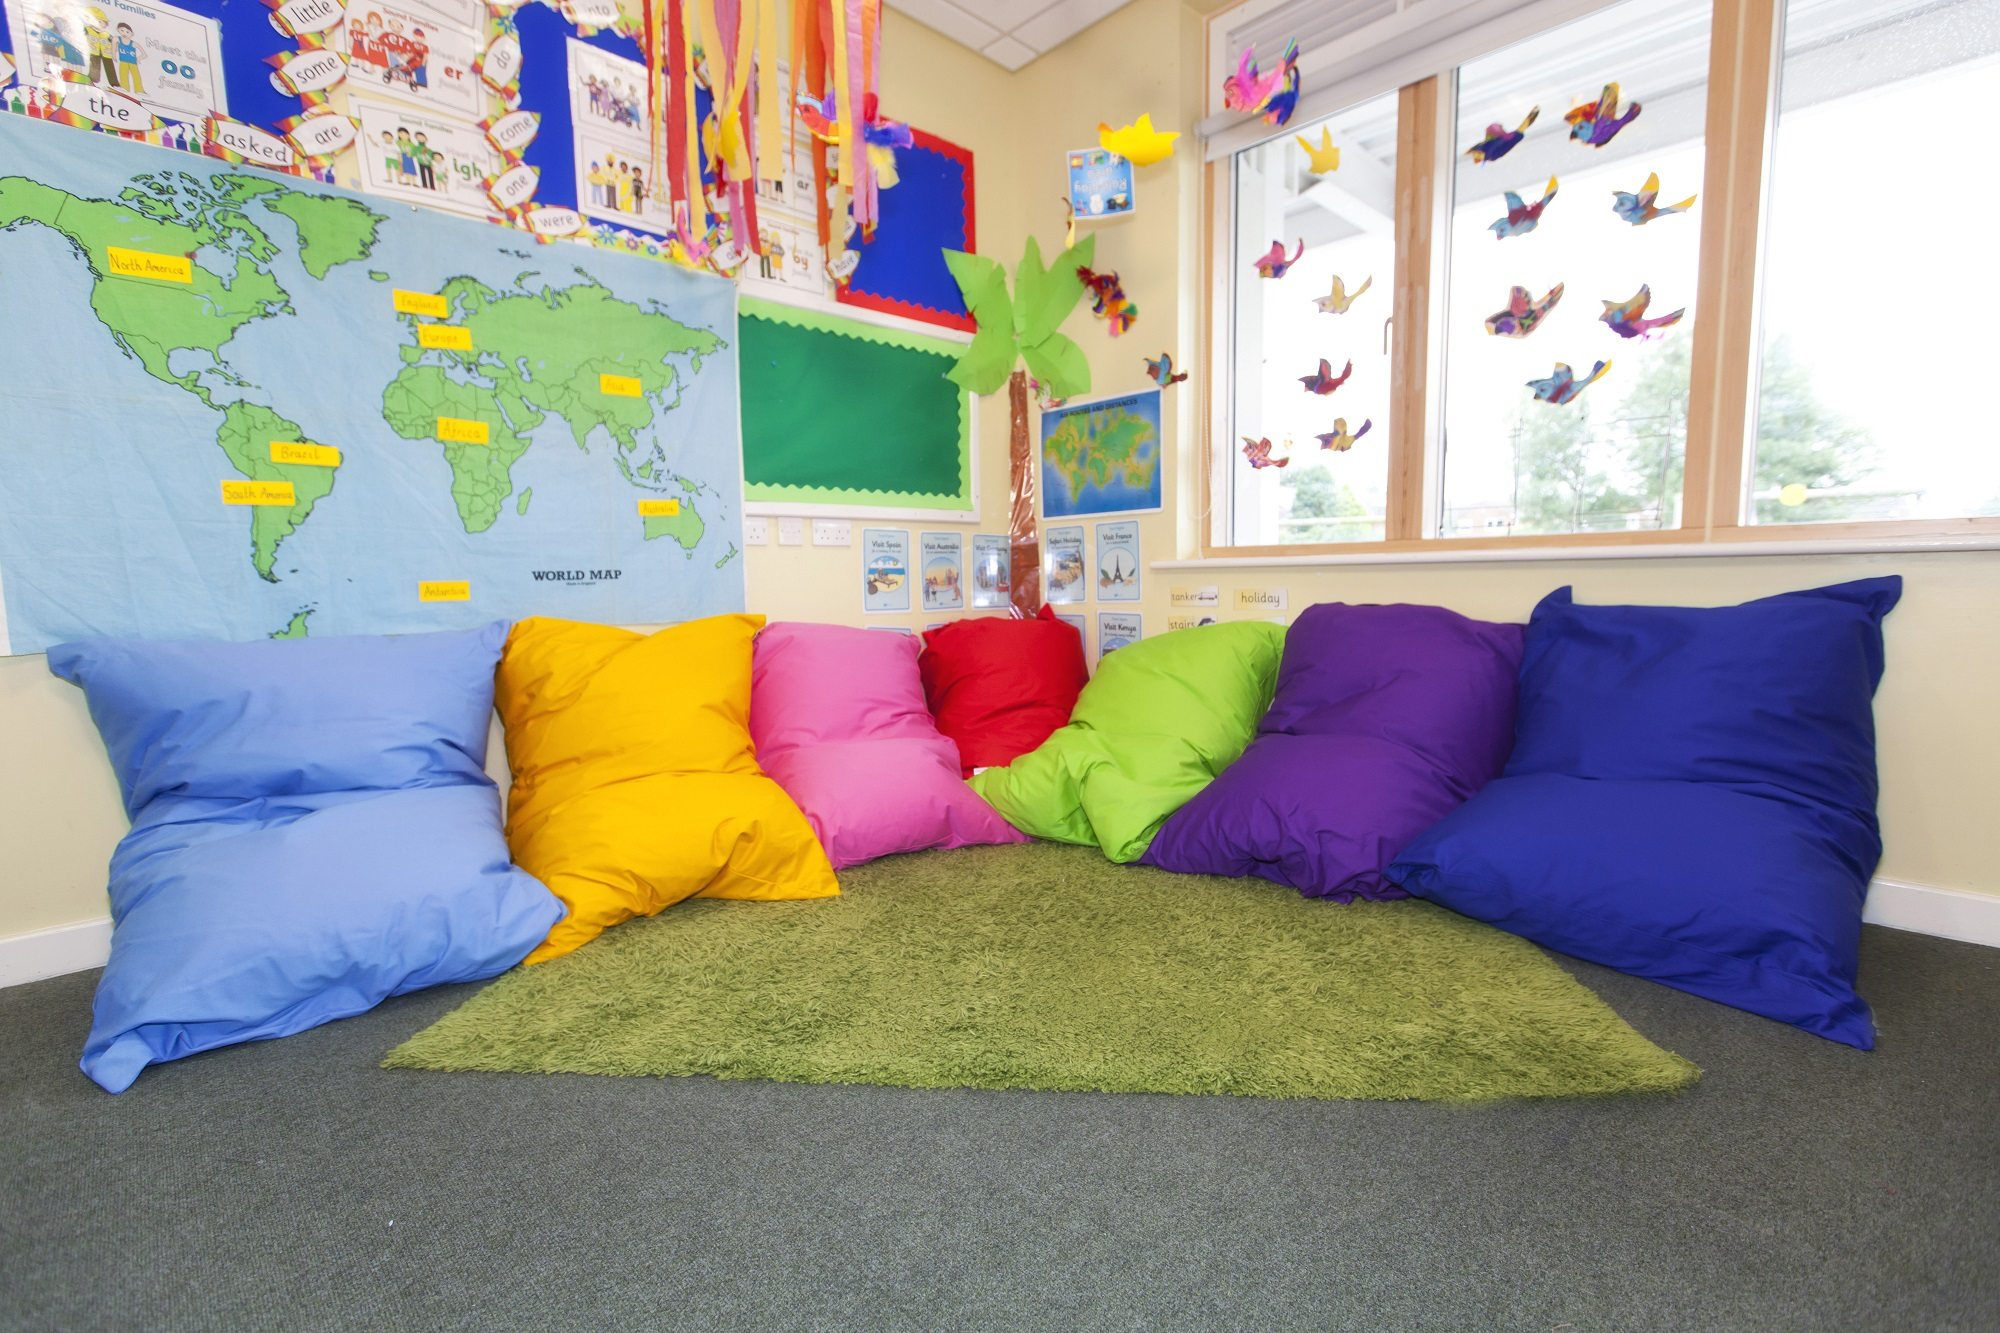 Giant Child Floor Cushion Cotton - Buy Bean Bags Online Today!